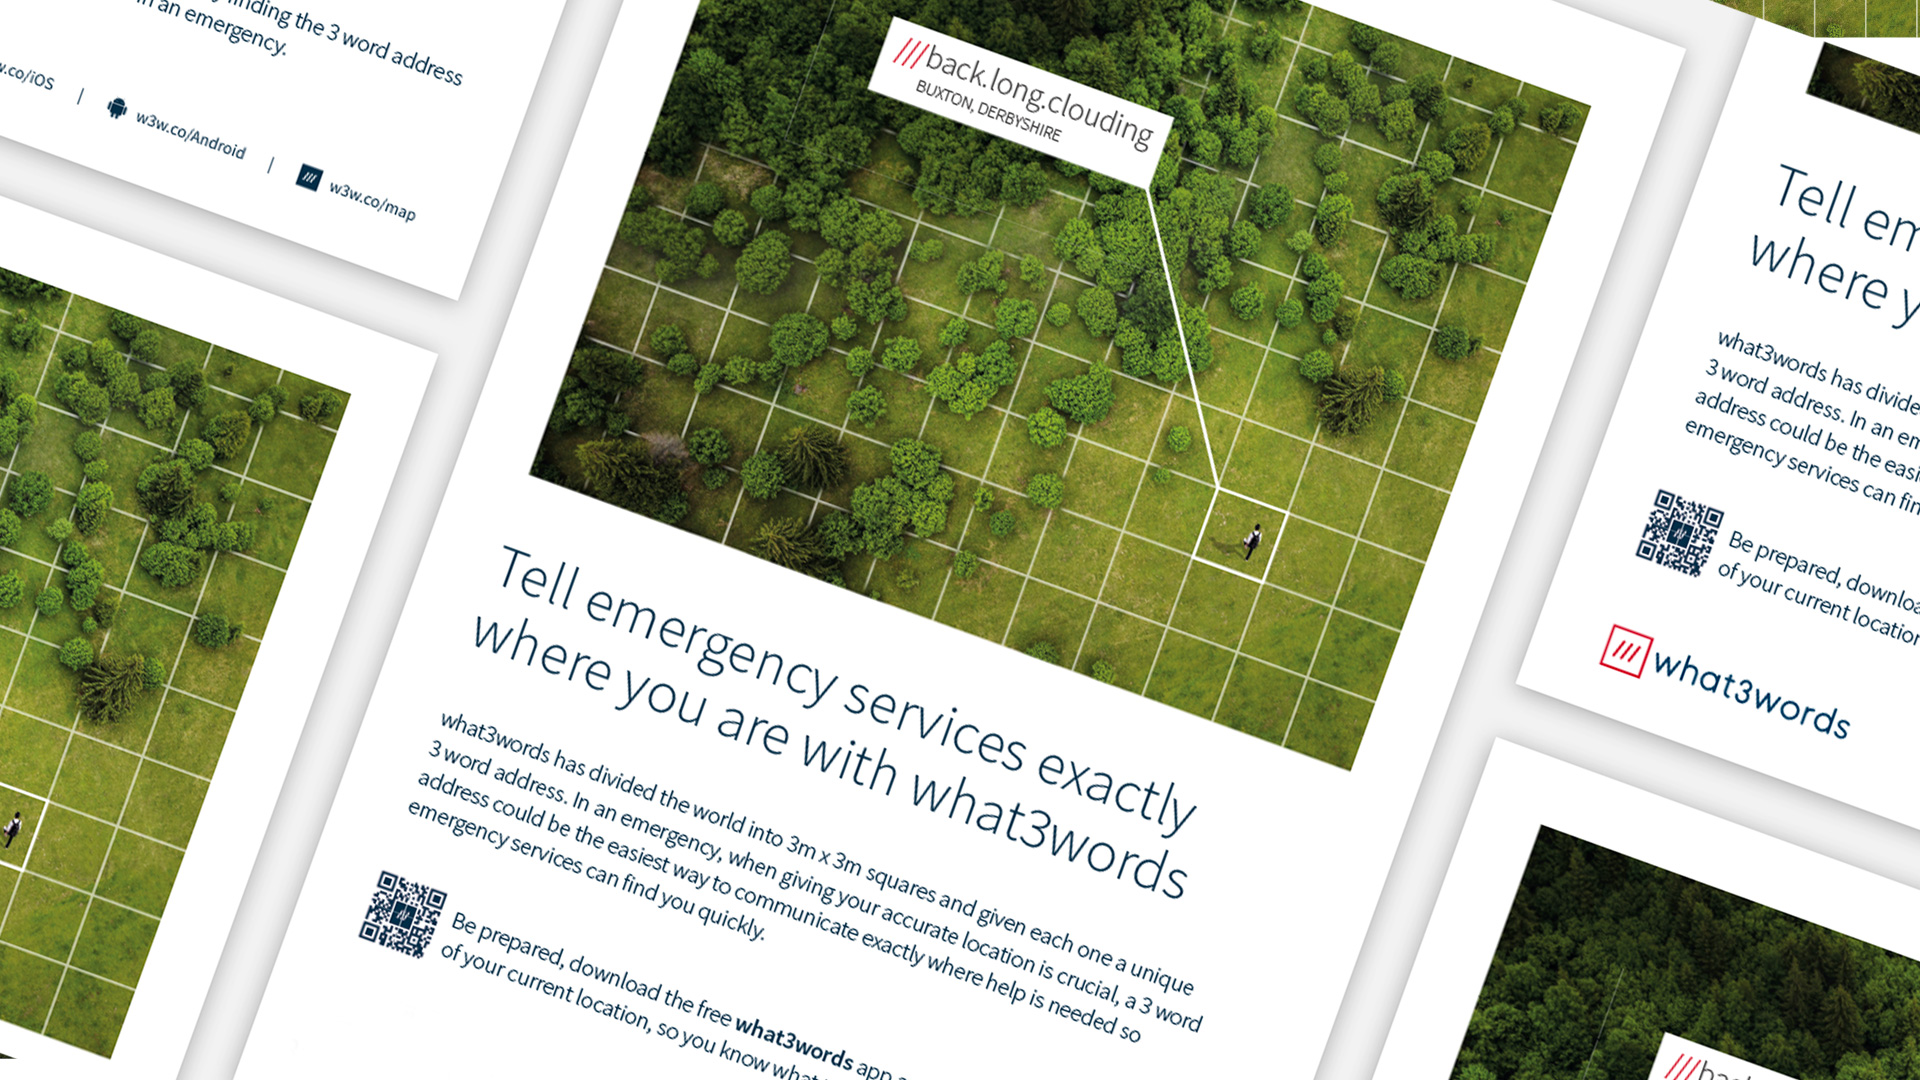 flyers for emergency services